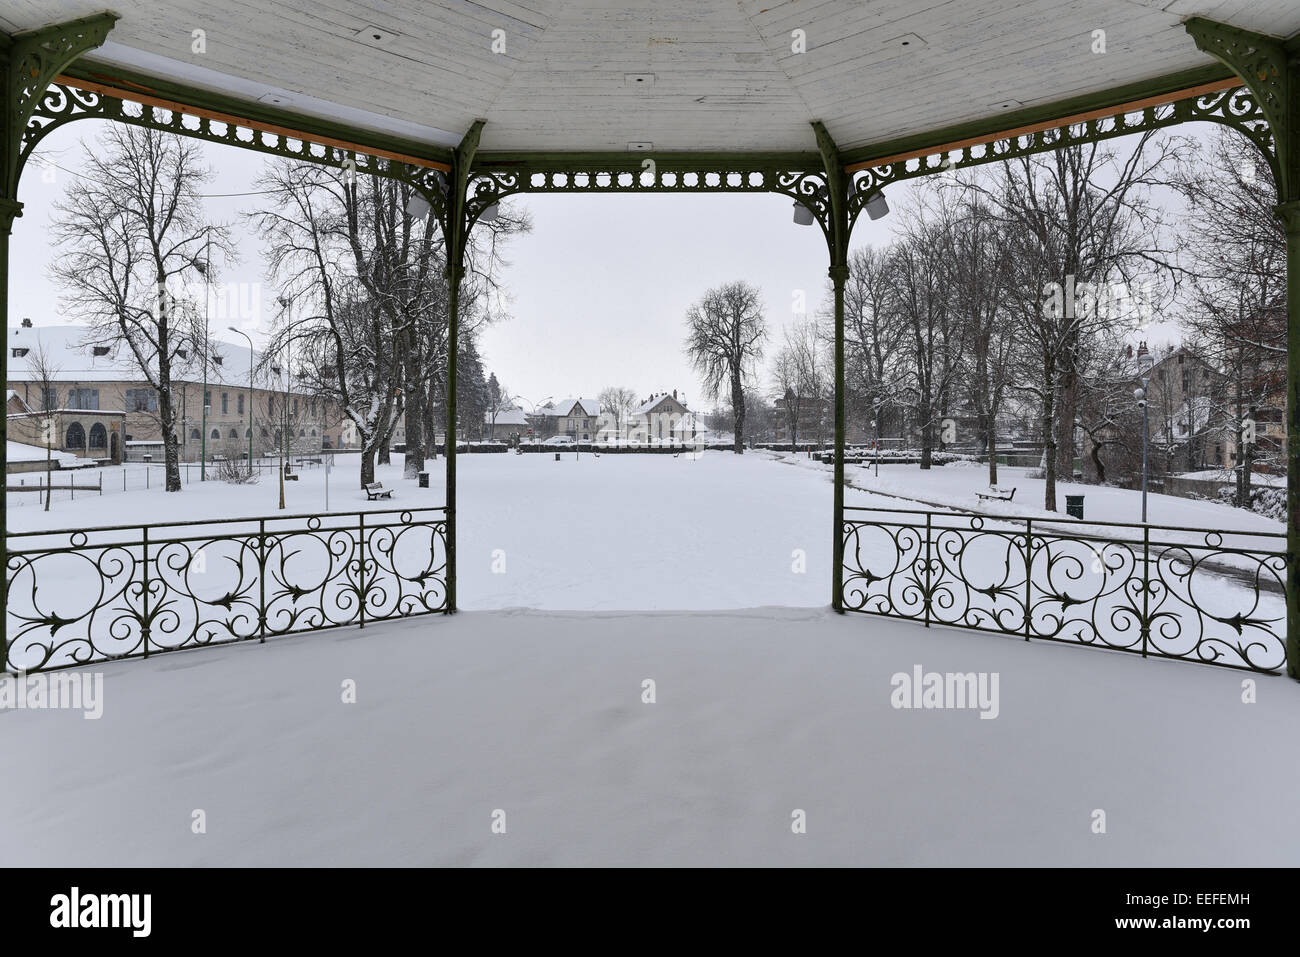 the bandstand in the snow - Stock Image